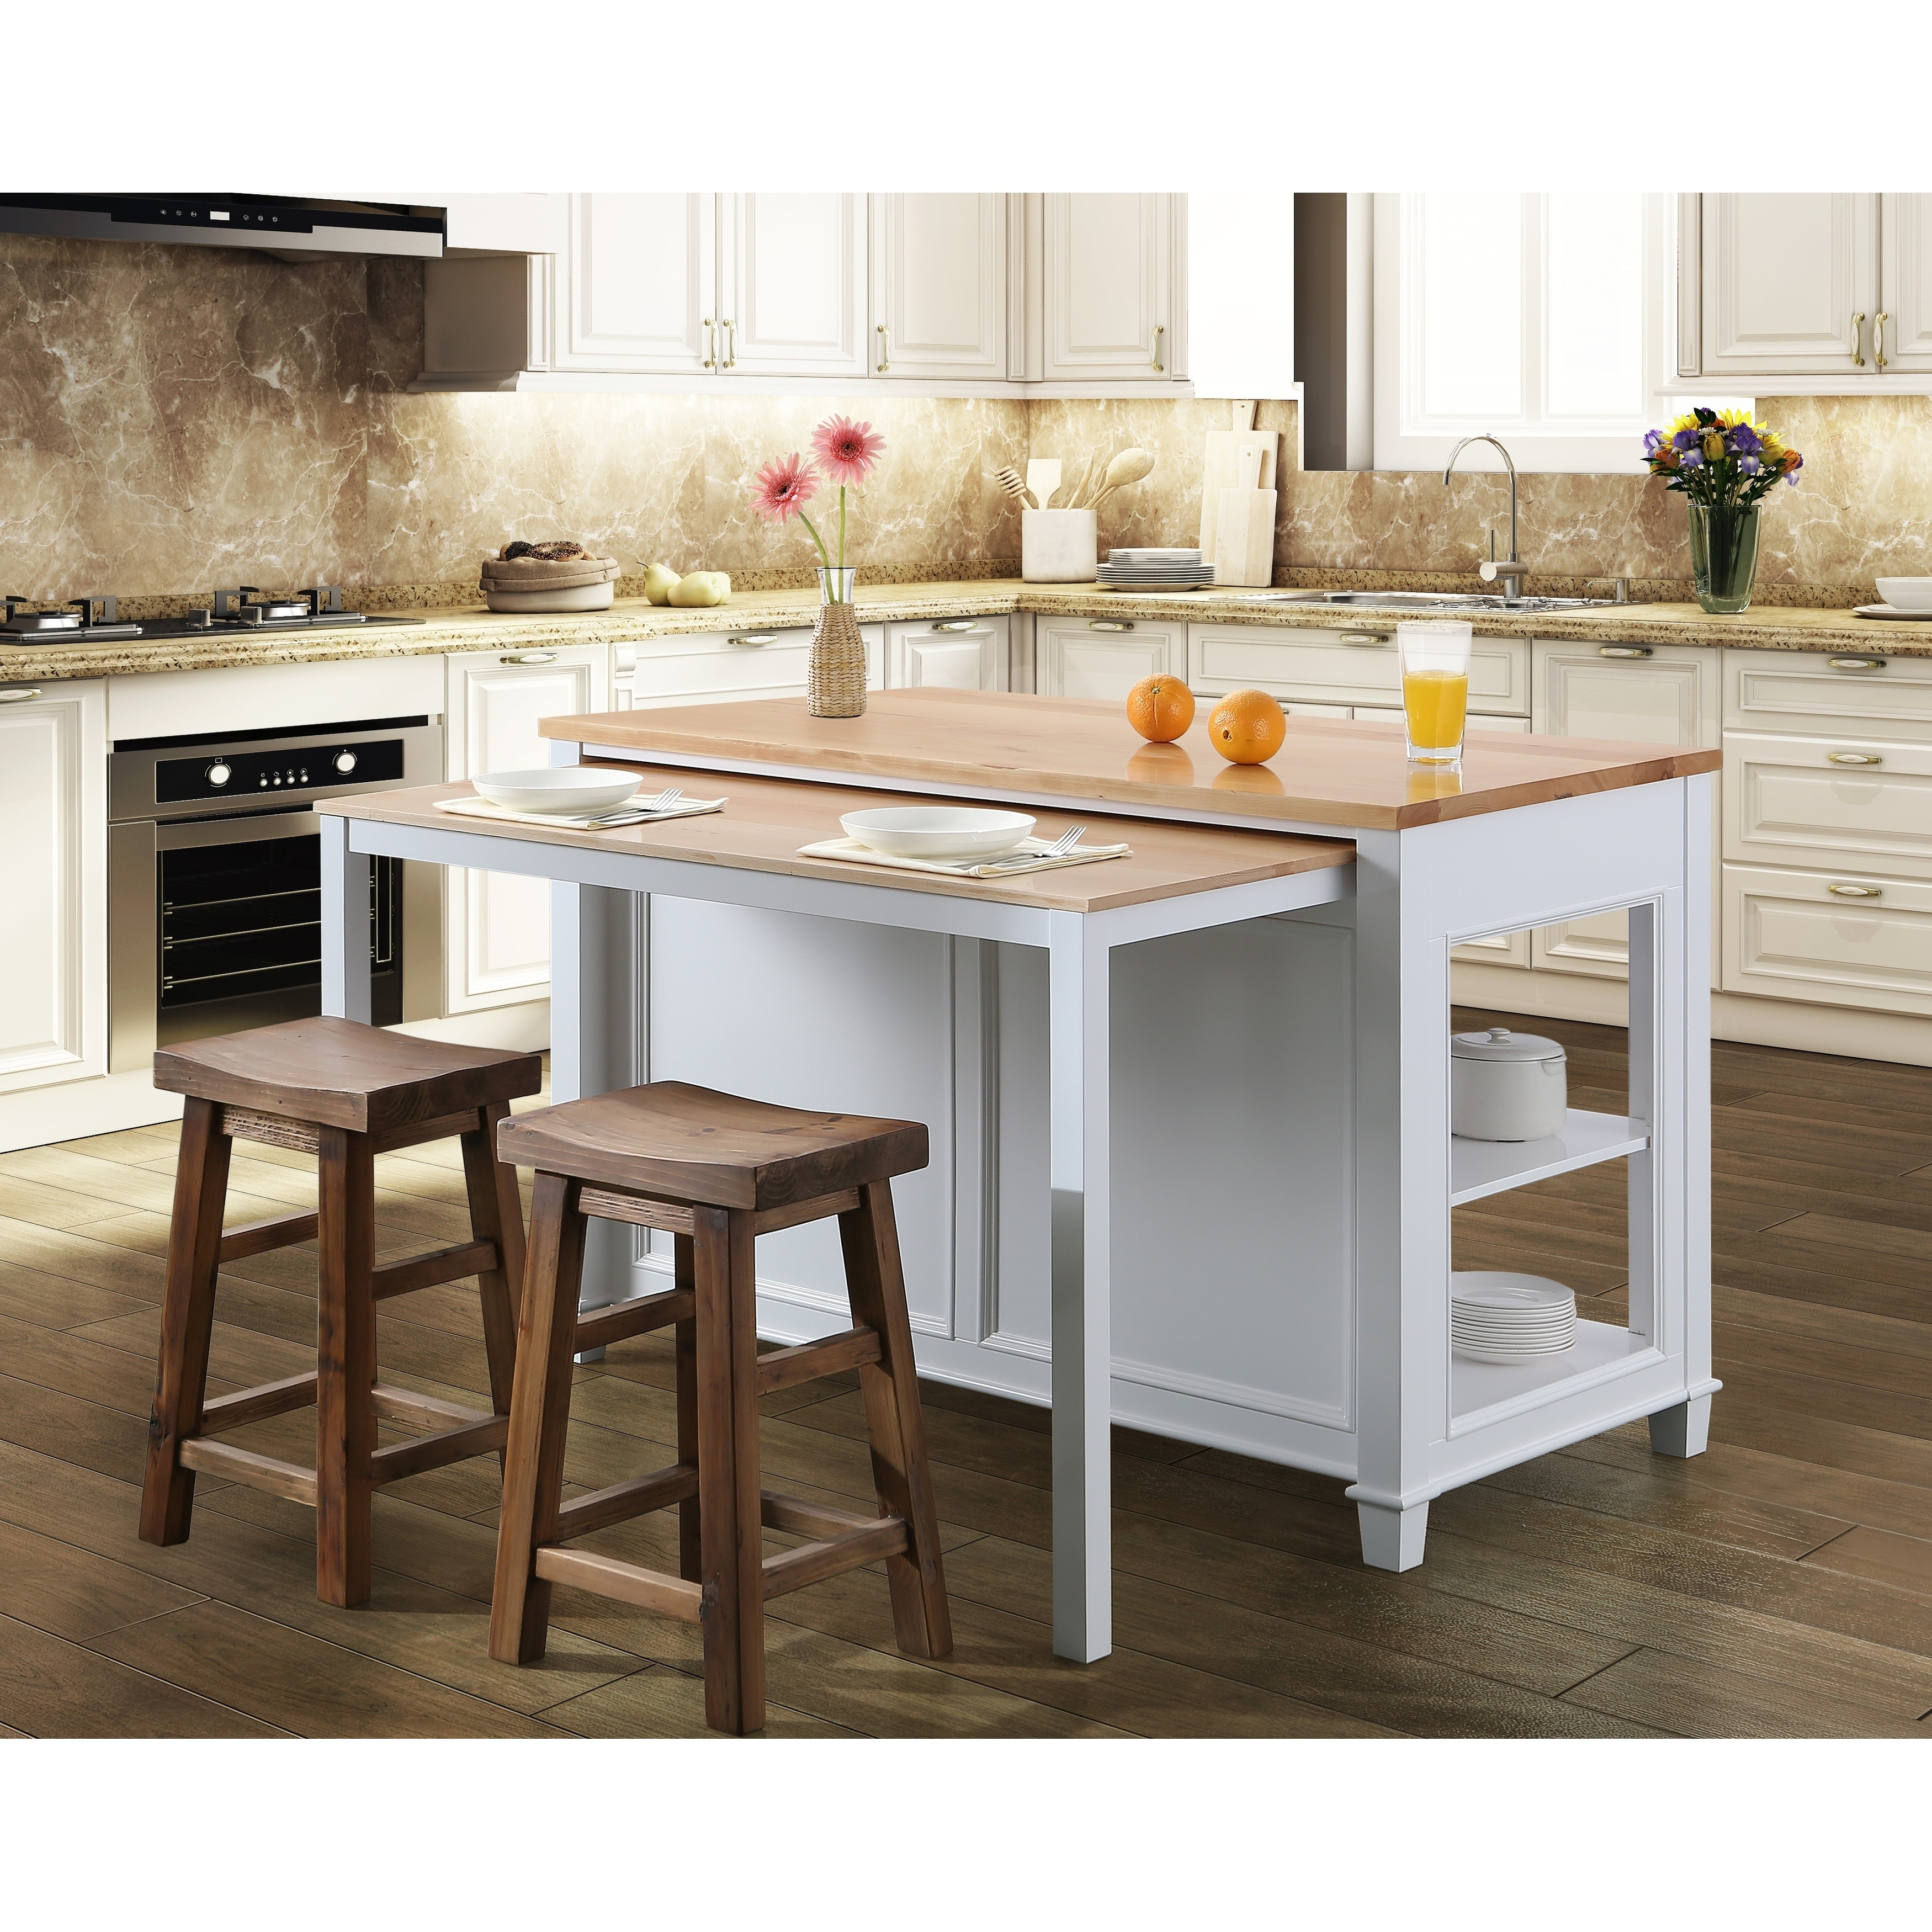 Medley 9 In. Kitchen Island With Slide Out Table in White   N/A